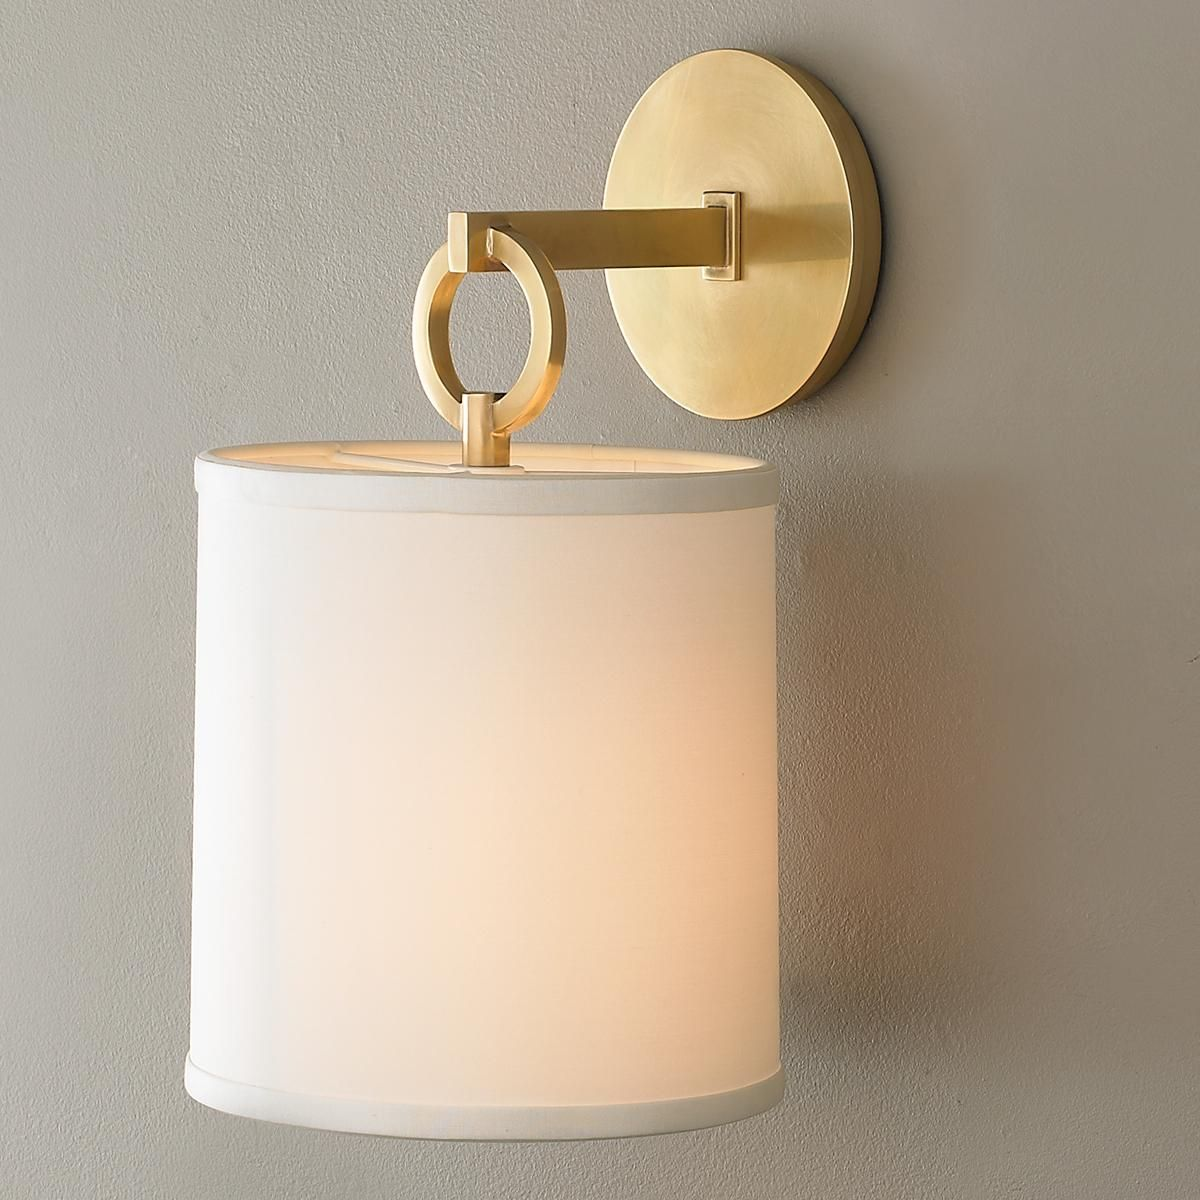 Full Circle Wall Sconce Wall Sconces Wall Sconces Bedroom